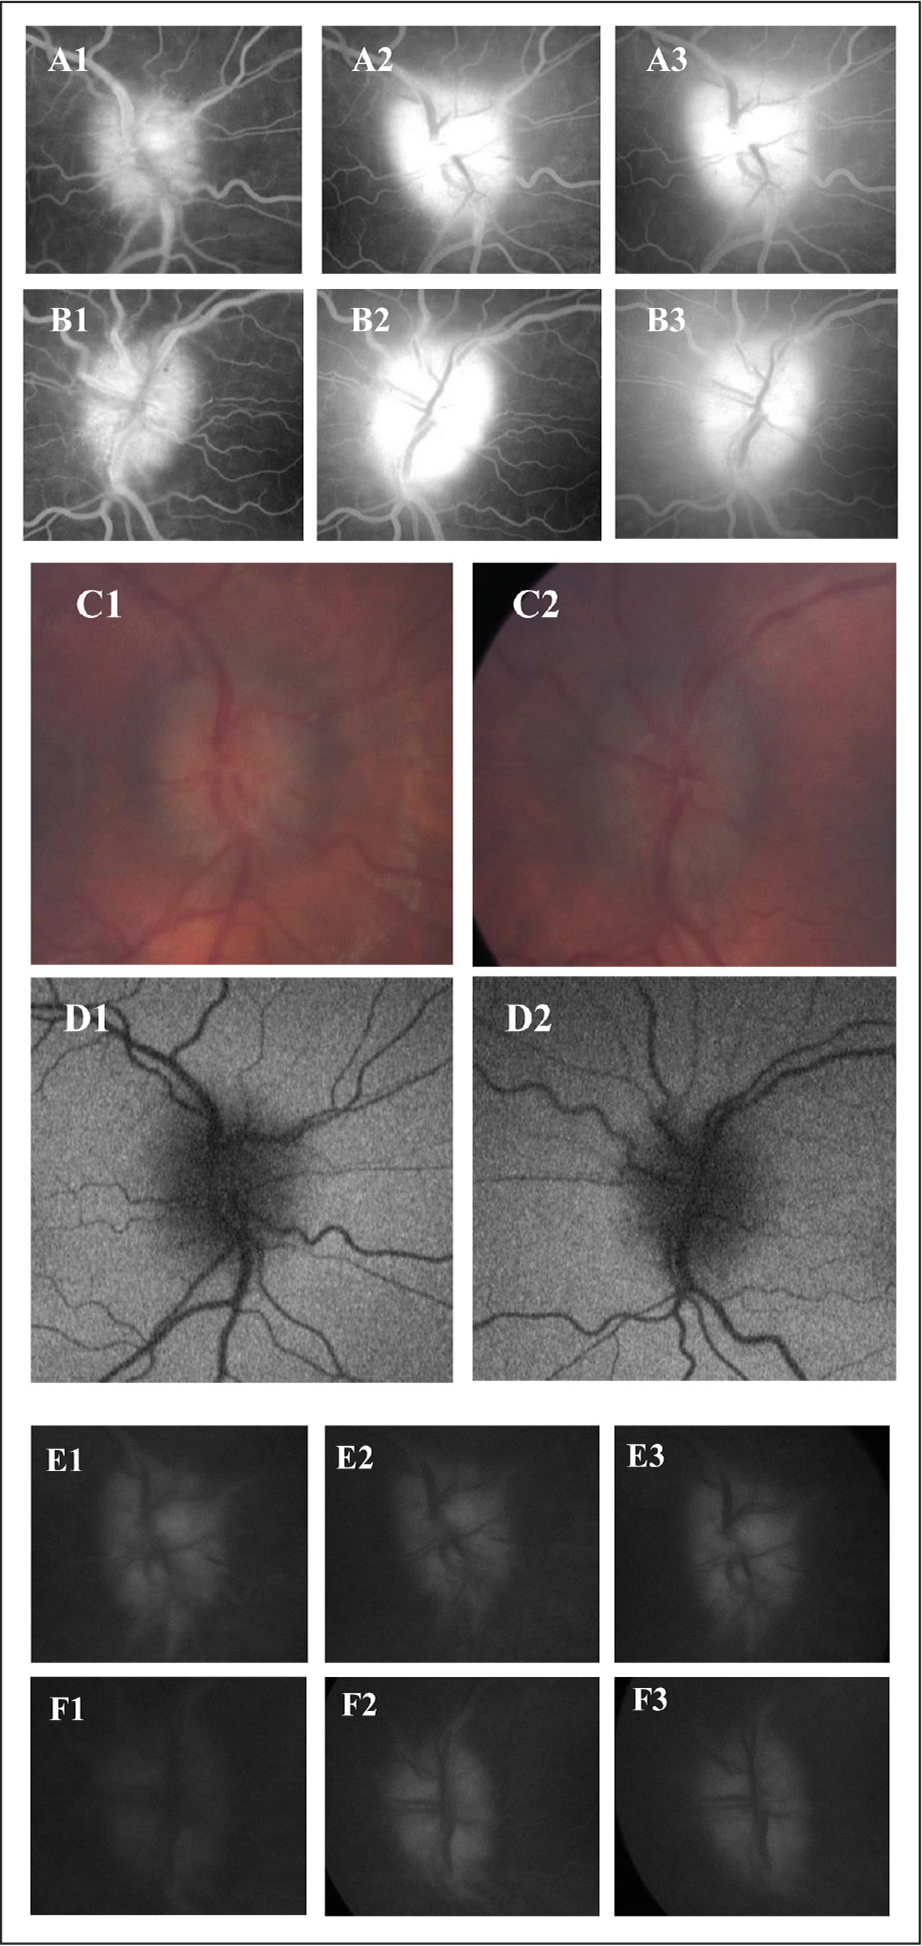 Optic nerve imaging of case 3. A1–A3 (right eye), B1–B3 (left eye): oral fluorescein angiography images at 20, 30, and 60 minutes after dye consumption. Increasing circumferential hyper-fluorescence with indistinct margins. C1 (right eye), C2 (left eye): color photographs showing 360 degrees of optic nerve head elevation without vessel obscuration. D1 (right eye), D2 (left eye): negative autofluorescence of each optic nerve head. E1–E3 (right eye), F1–F3 (left eye): intravenous fluorescein angiography images at 2 to 5 minutes on the right and 1 to 6 minutes on the left after dye injection. Diffuse hyperfluorescence at the optic nerve head with indistinct margins. Earlier phase photographs were unable to be obtained because the correct camera filter was inadvertently turned off at the beginning of the study.